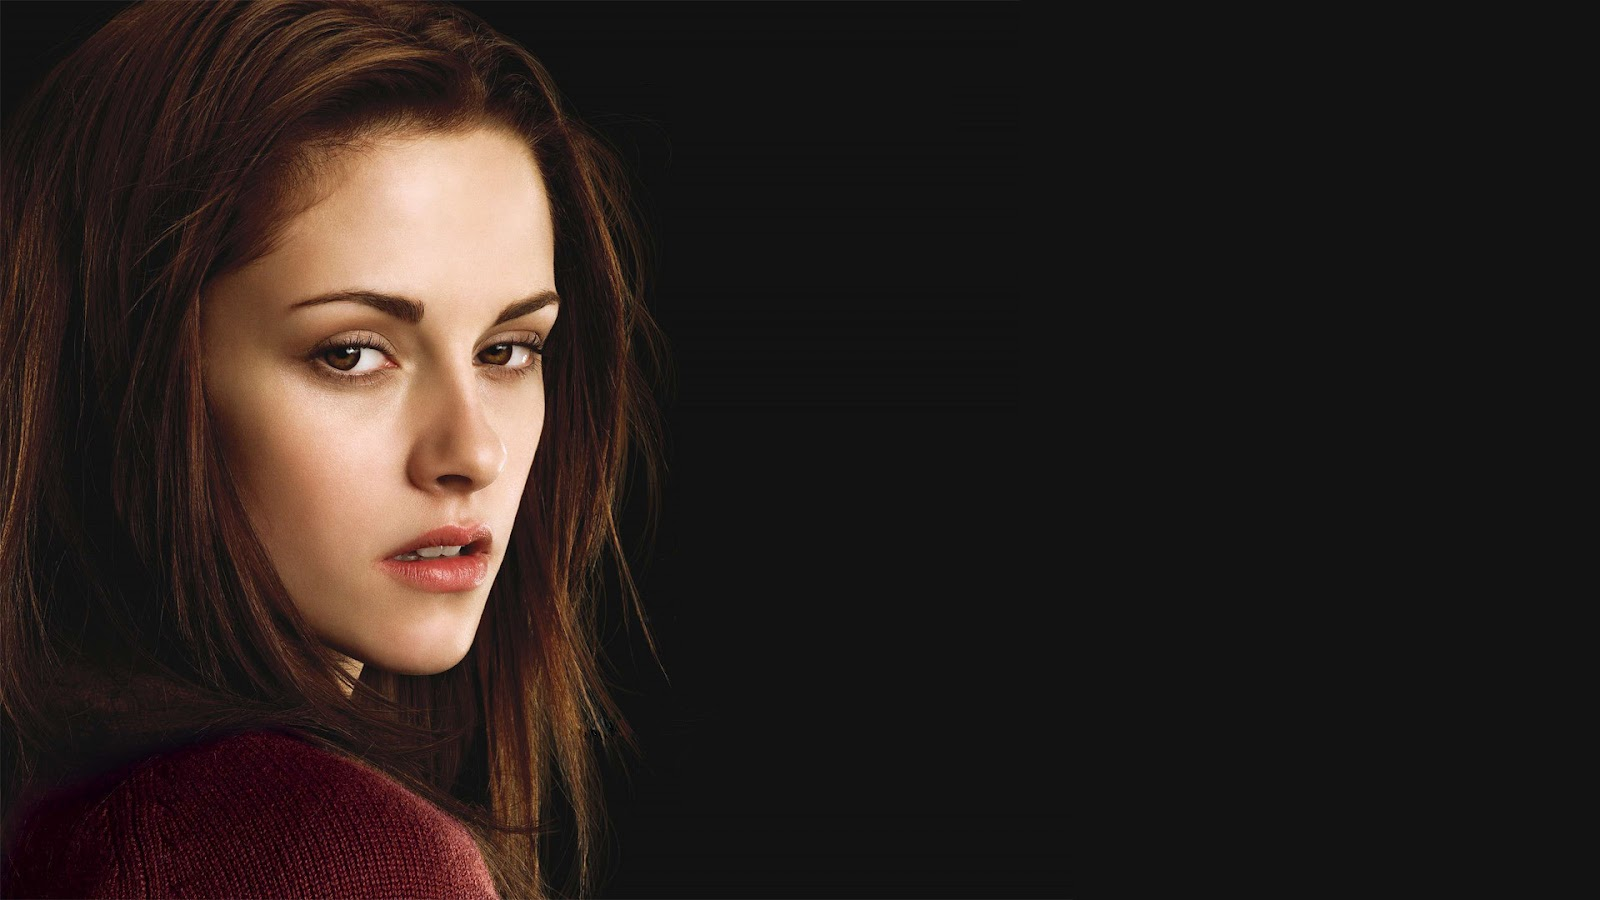 http://4.bp.blogspot.com/-1IRgMenxF_4/UBKs4pFf_-I/AAAAAAAADNs/Ld0unnafdEI/s1600/the-twilight-saga-new-moon-hd-desktop-288161.jpg